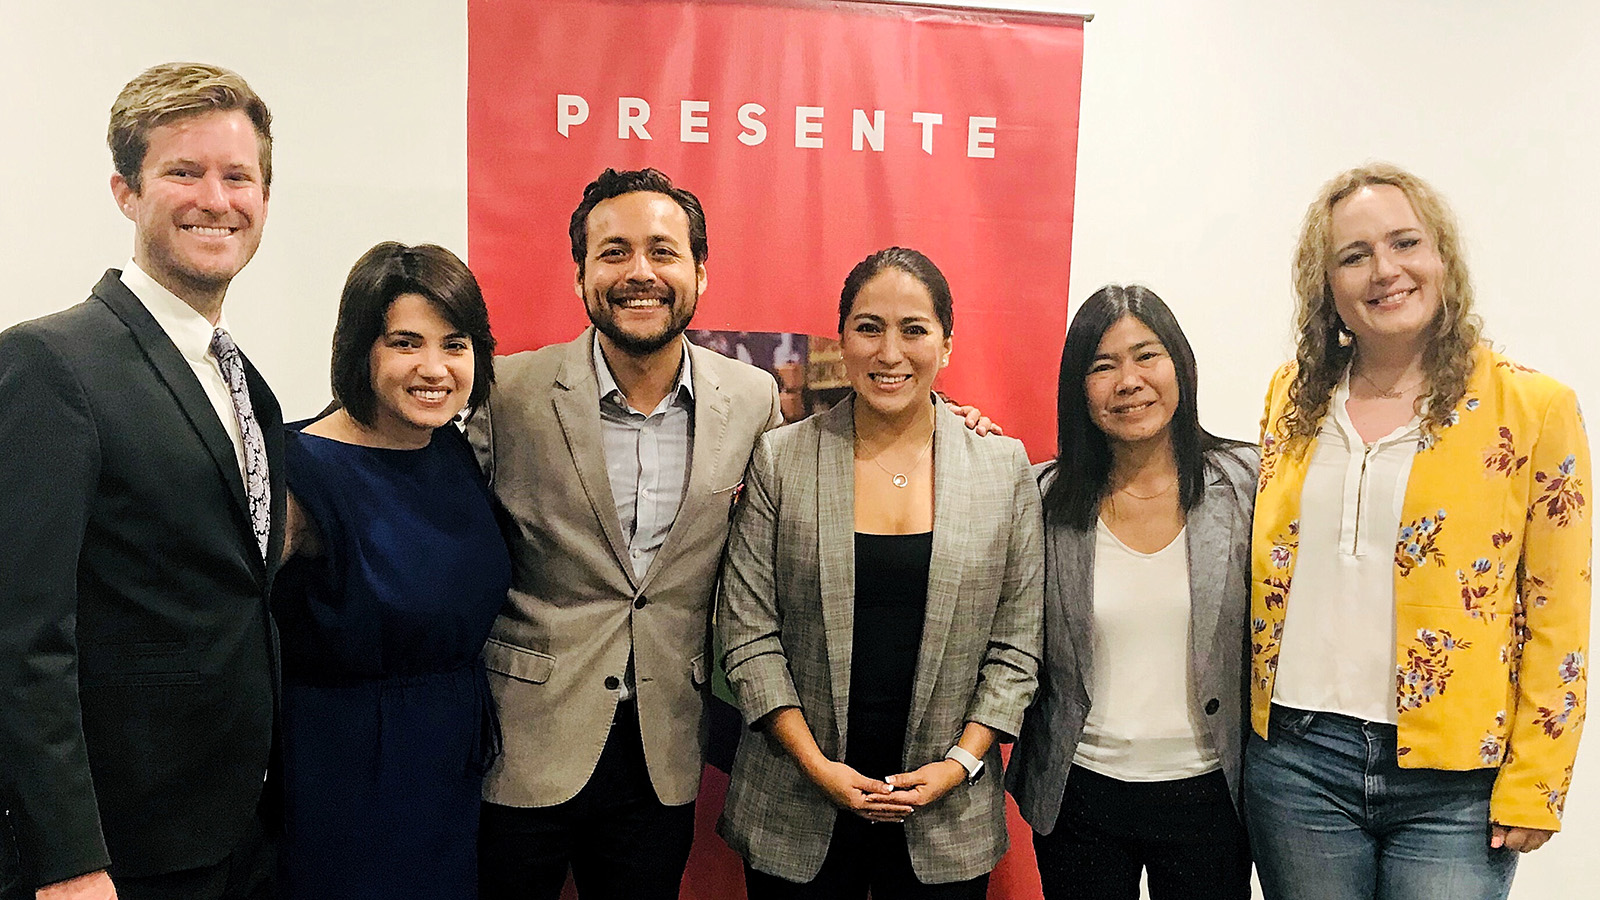 HRC Partners with Peru's Largest LGBTQ Rights Organization to Promote Workplace Inclusion